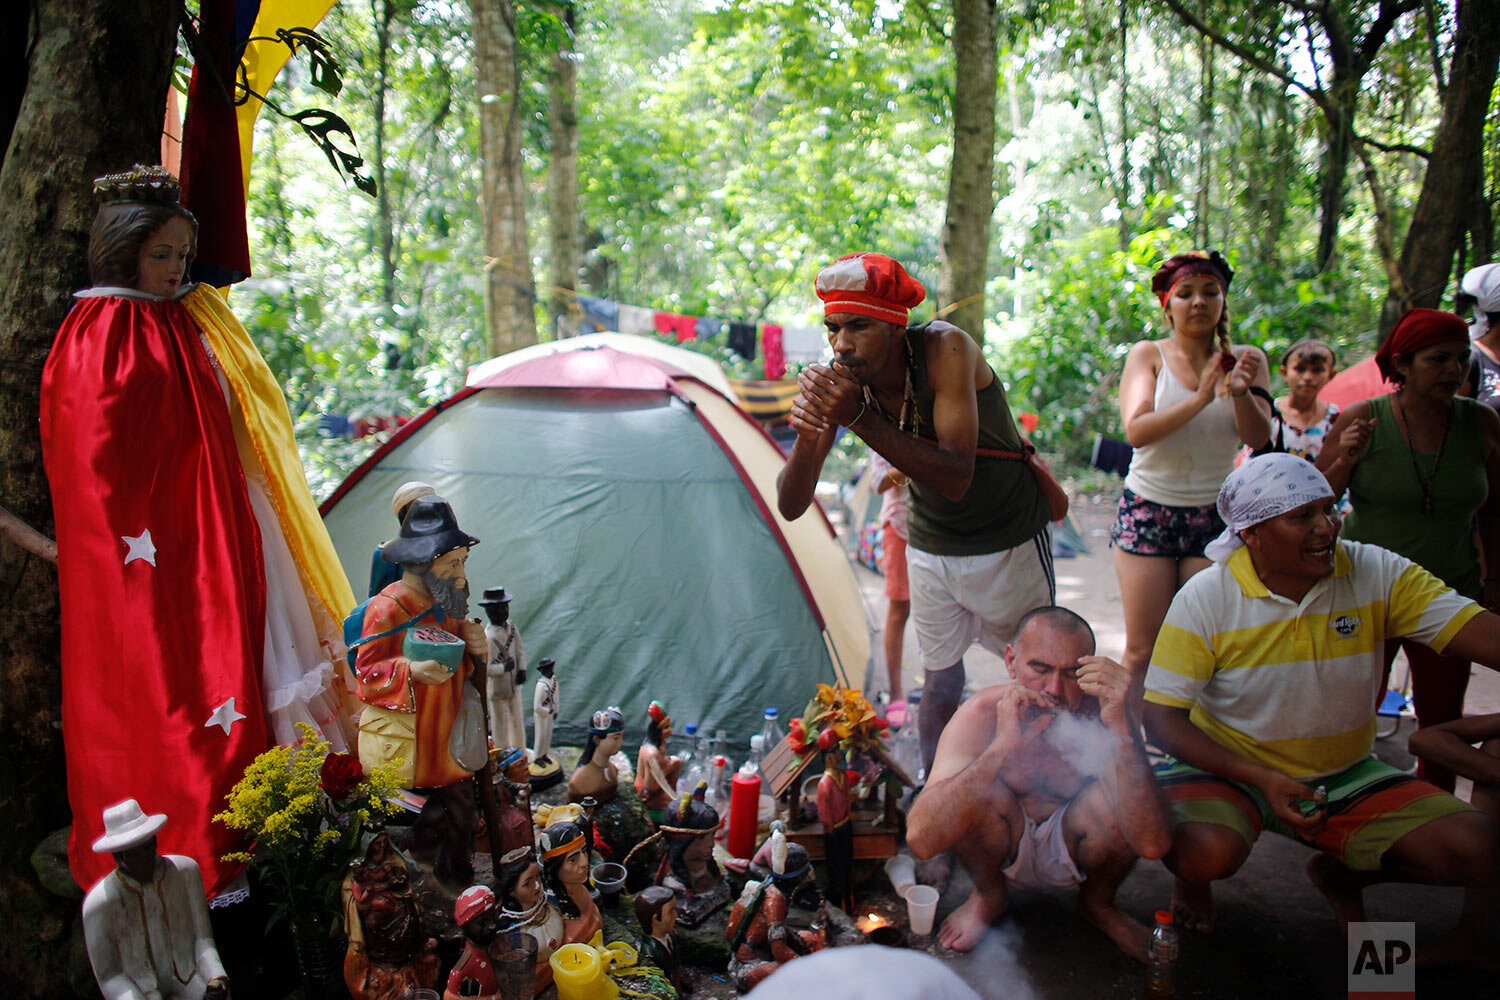 In this photo taken Oct. 12, 2019, followers of indigenous goddess Maria Lionza smoke cigars during purification rituals and to deflect evil spirits, next to an altar featuring her statue, left, on Sorte Mountain where followers of the goddess gather annually in Venezuela's Yaracuy state. (AP Photo/Ariana Cubillos)